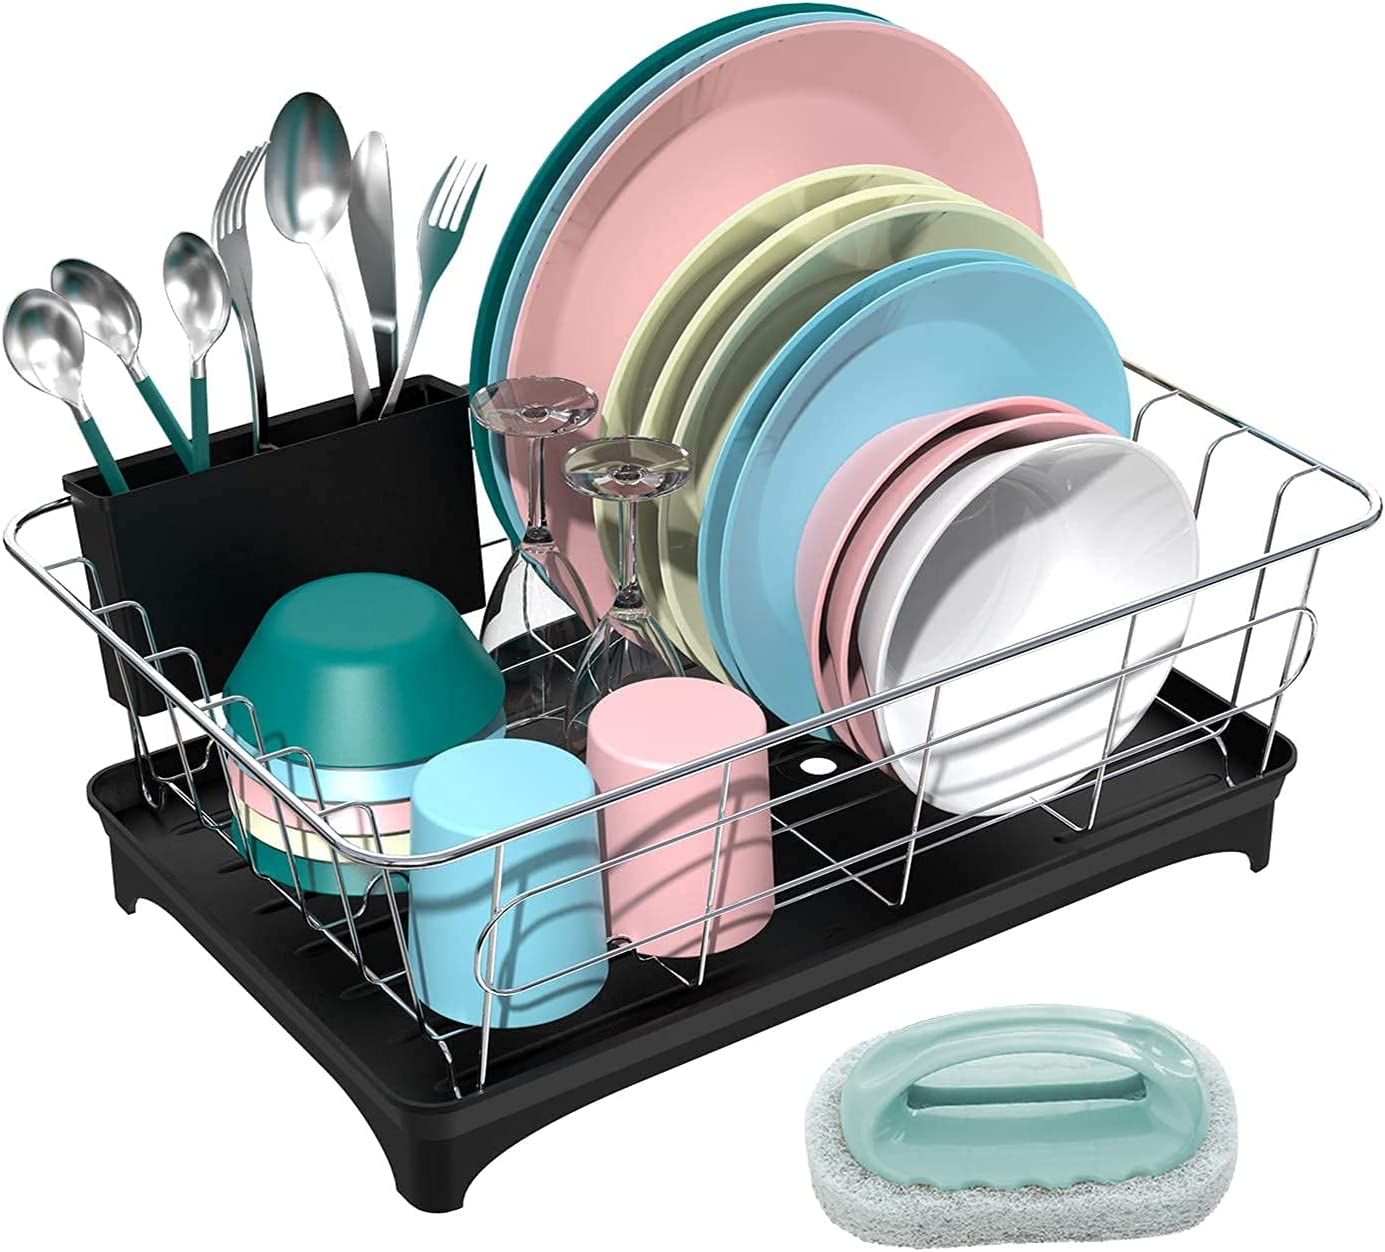 Factory outlet ANTOWIN Dish Superlatite Drying Rack Drainer Set Drain Board with